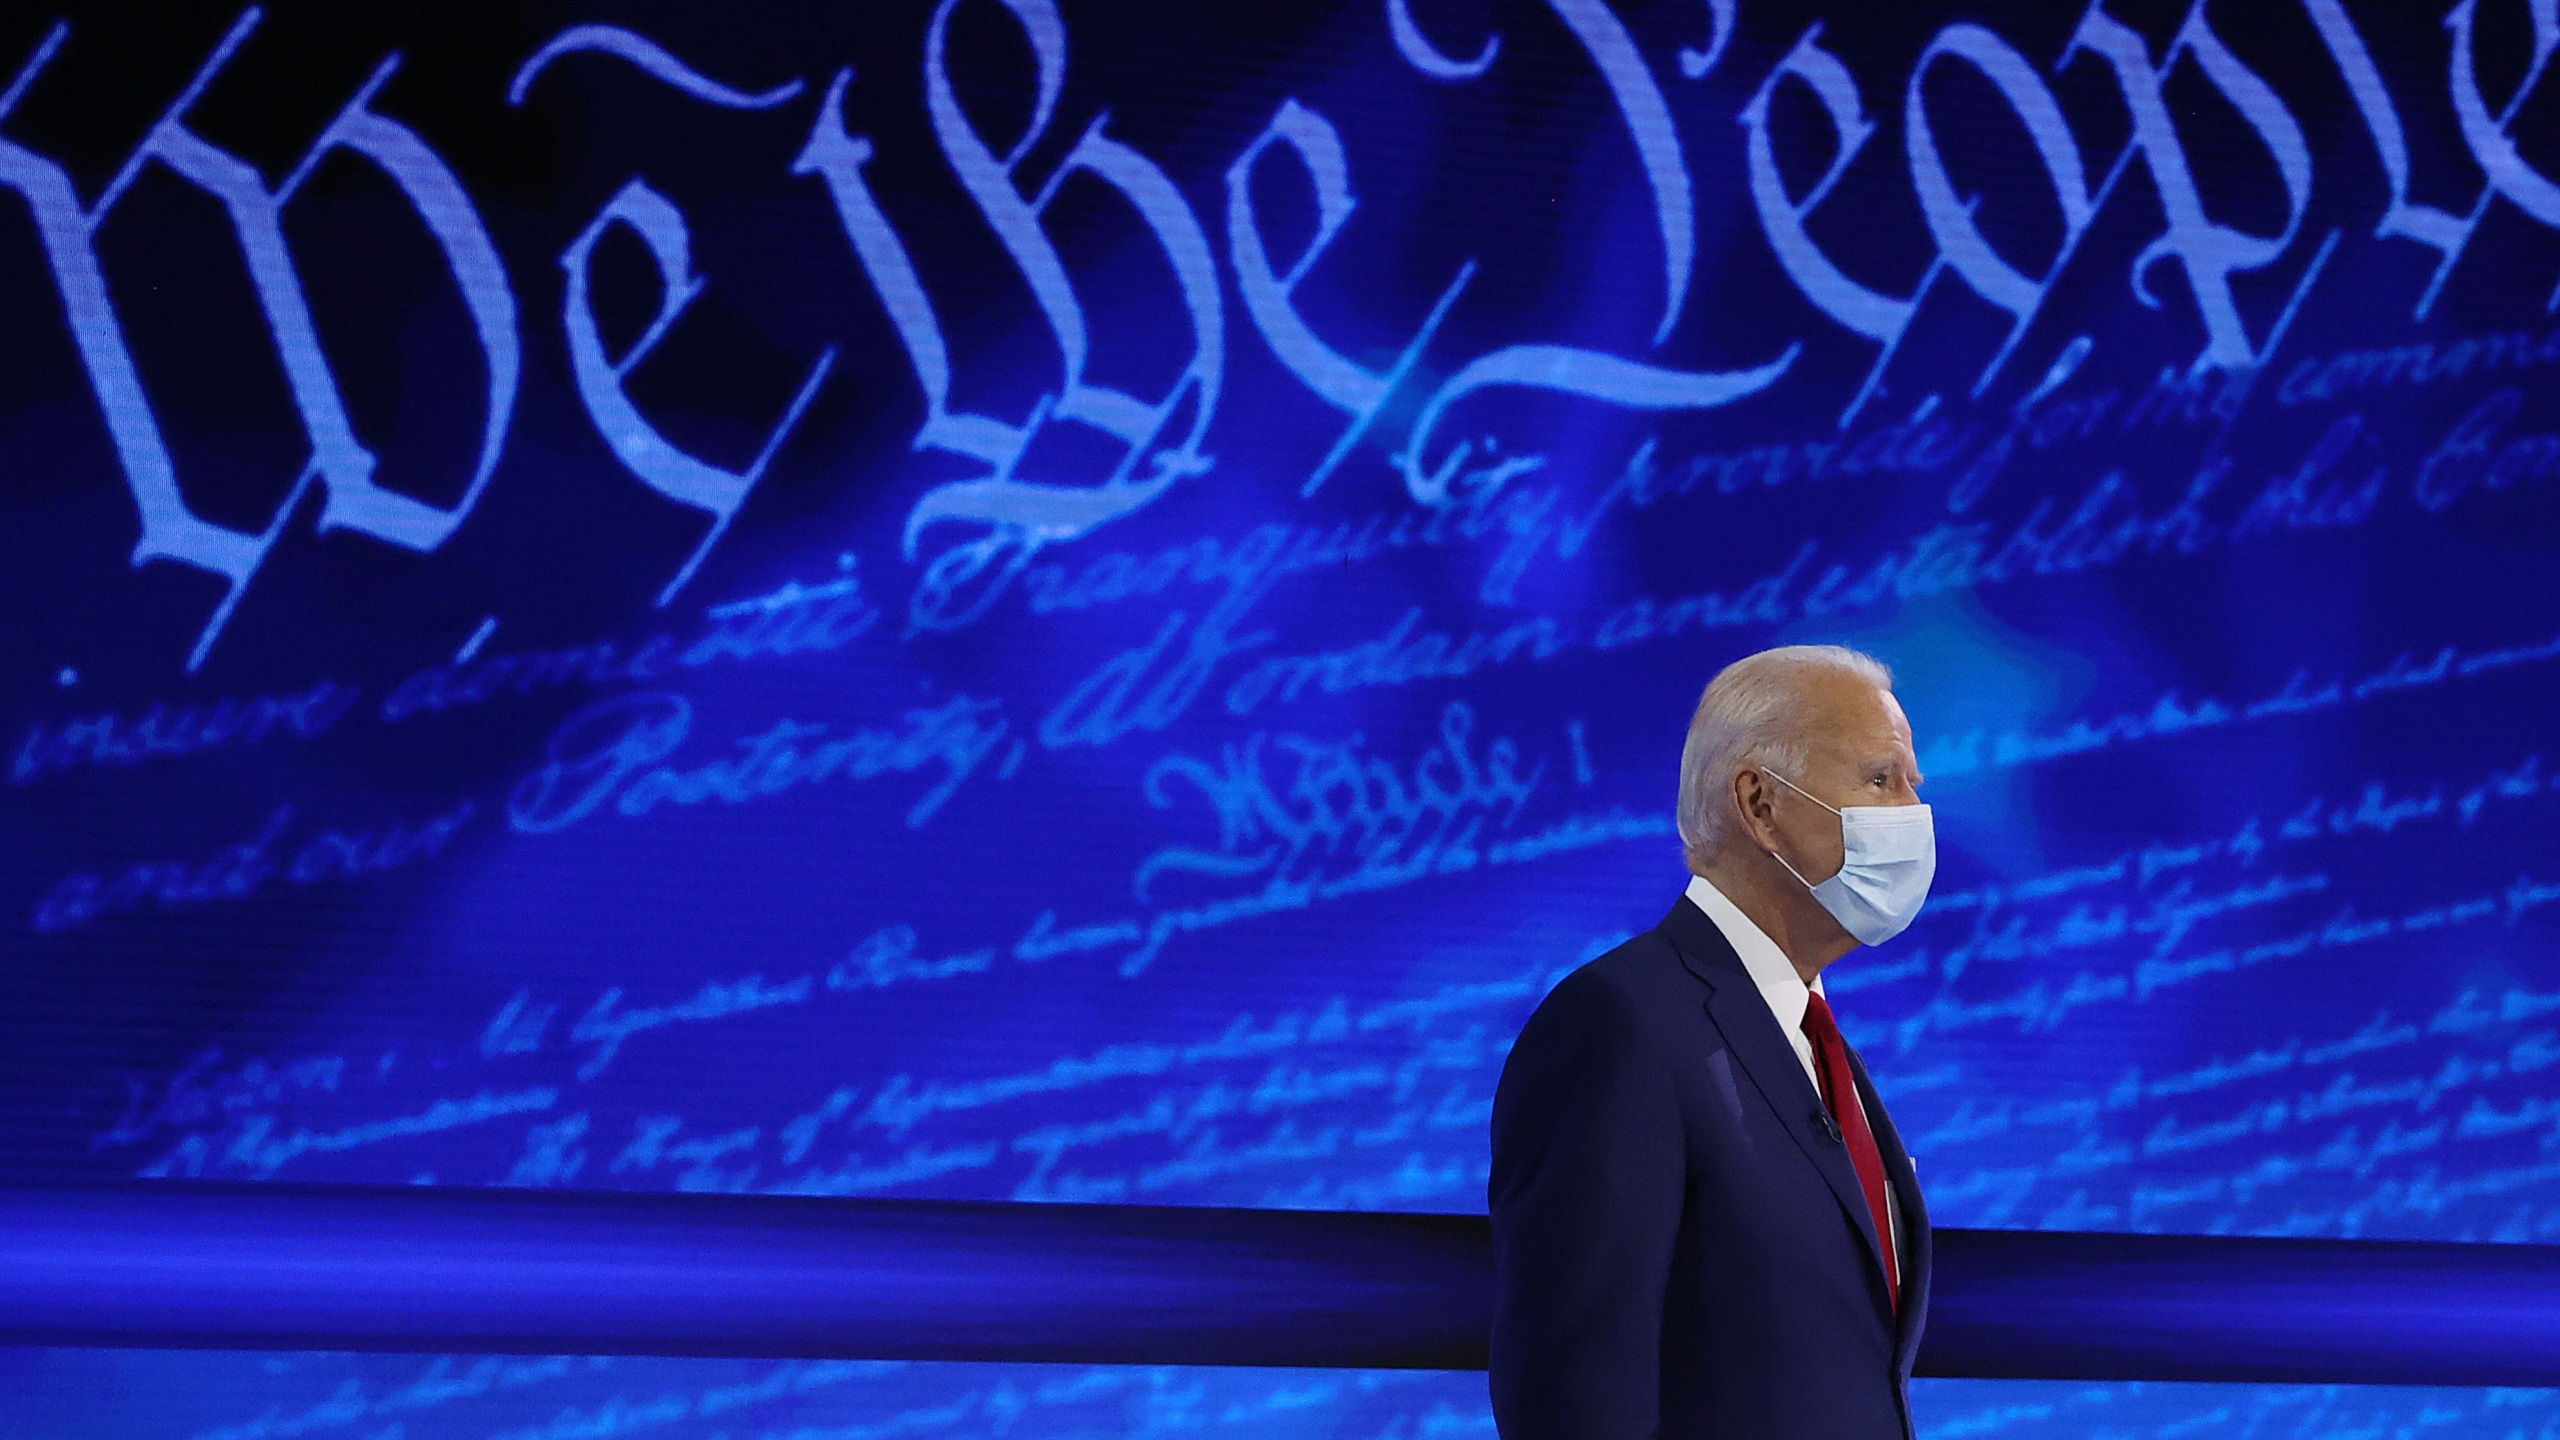 Democratic presidential nominee Joe Biden participates in a Town Hall format meeting with ABC News Chief Anchor George Stephanopoulos at the National Constitution Center on Oct. 15, 2020 in Philadelphia, Pennsylvania. (Chip Somodevilla/Getty Images)